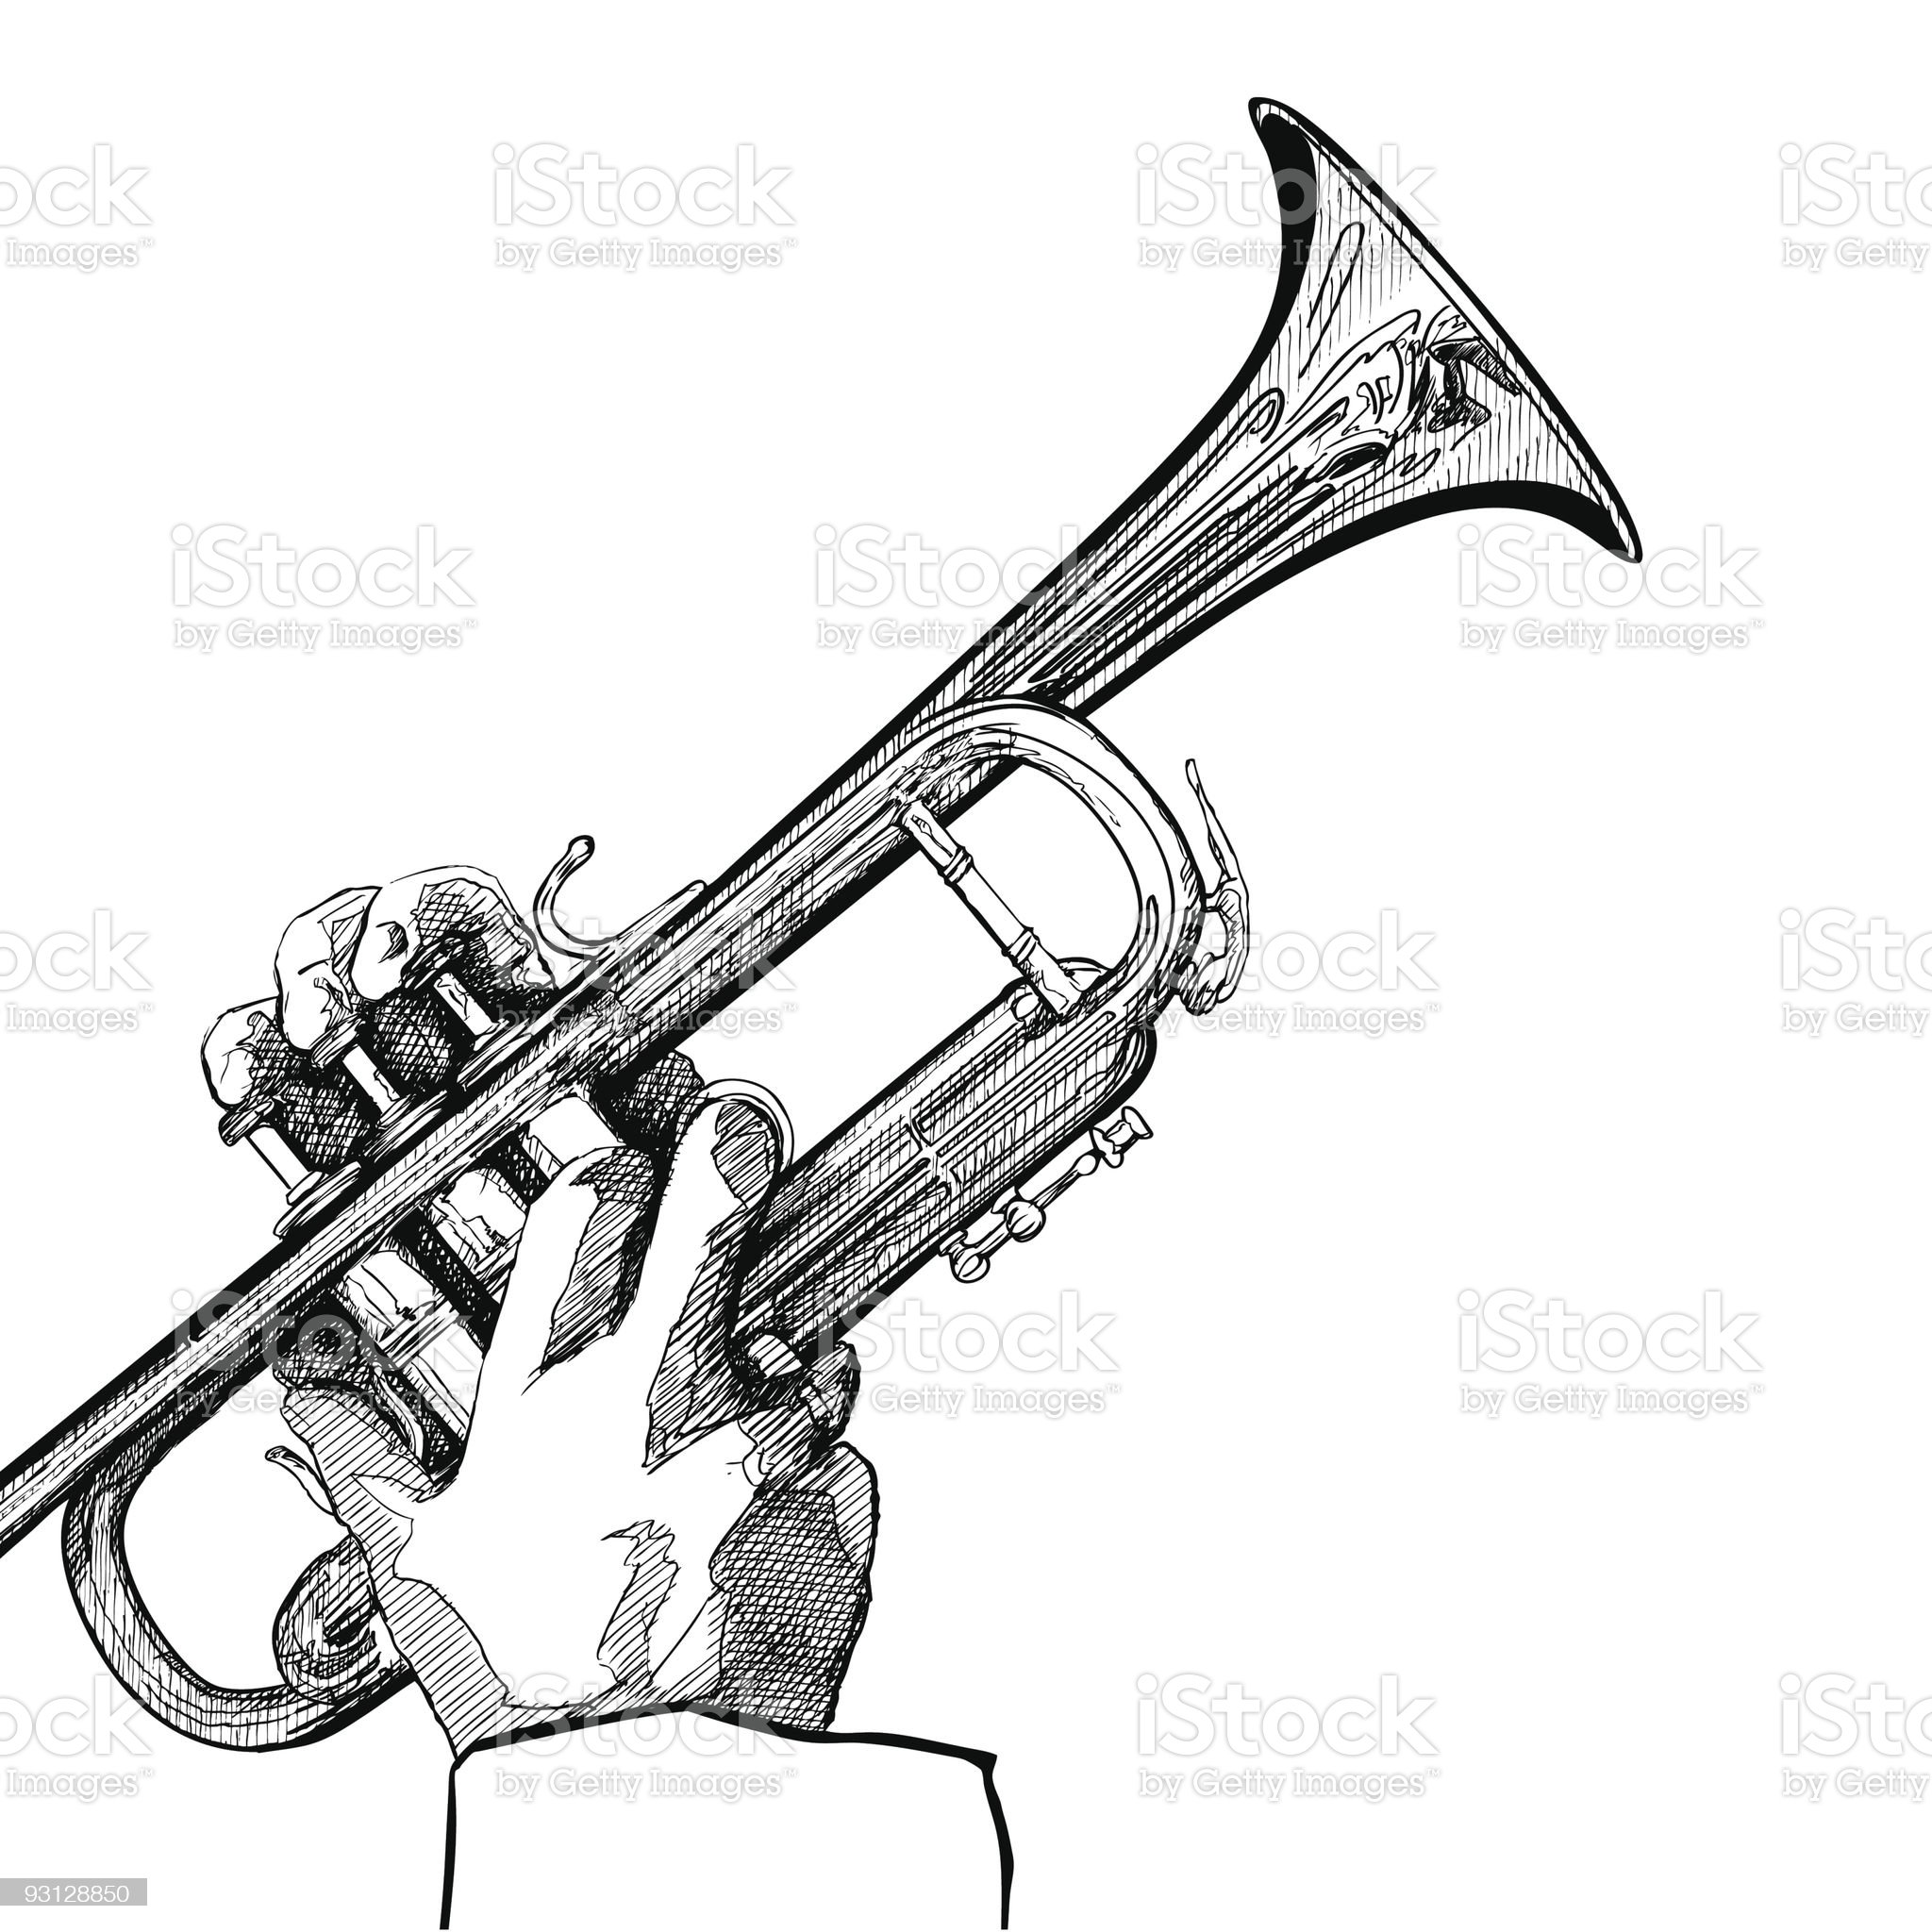 trumpet on white background royalty-free stock vector art